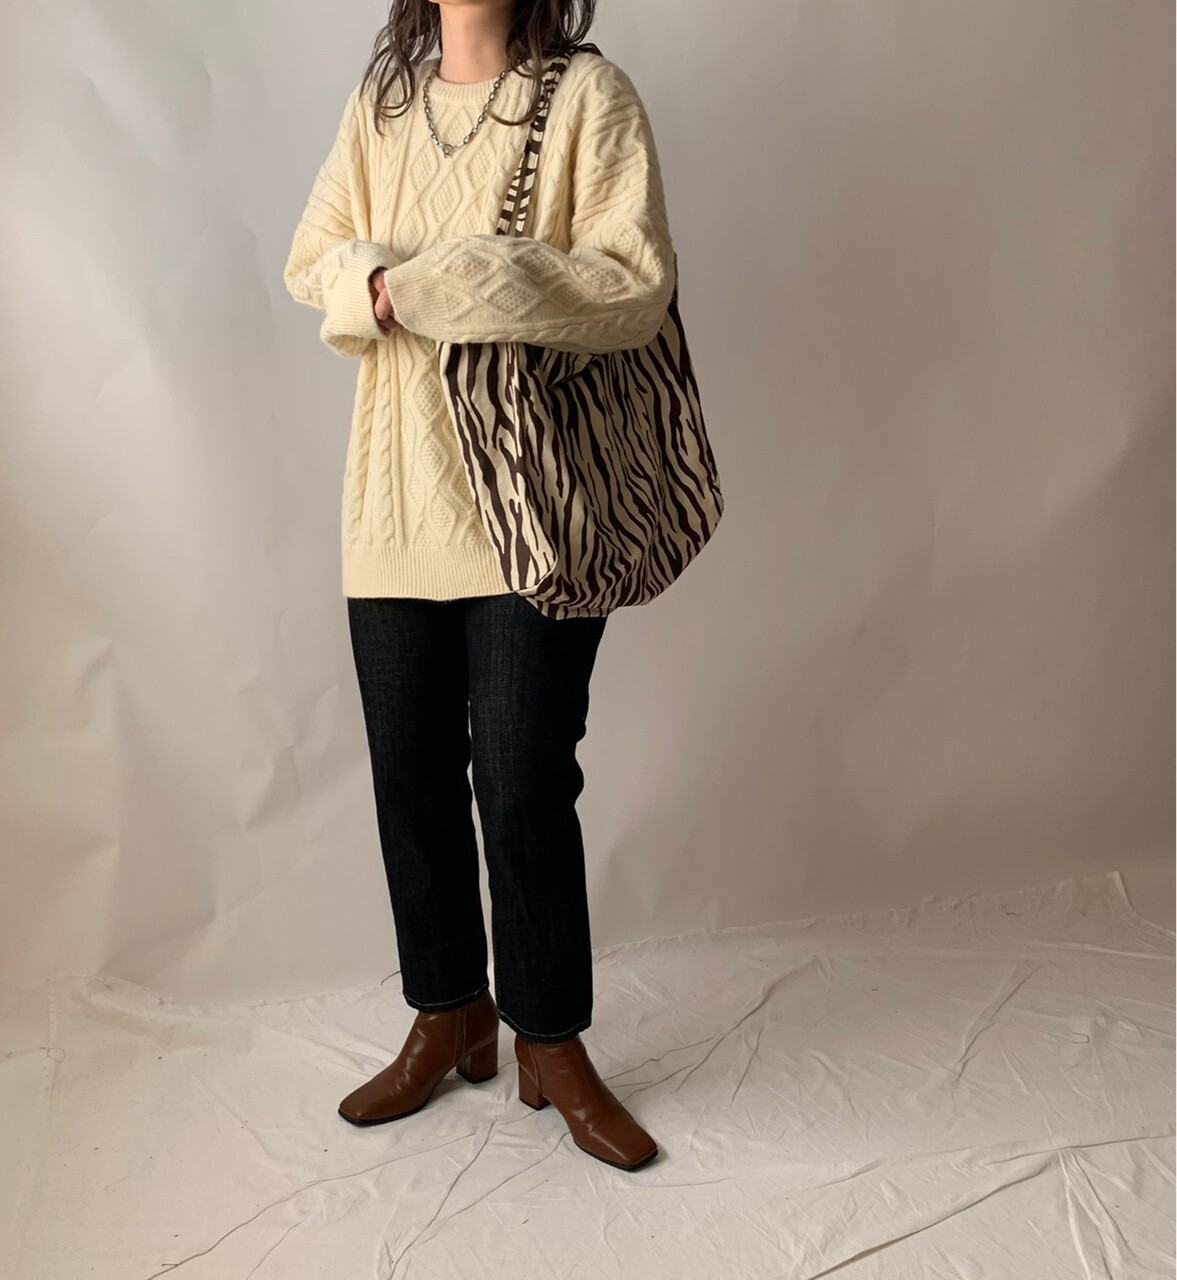 【asyu】cable knit tunic